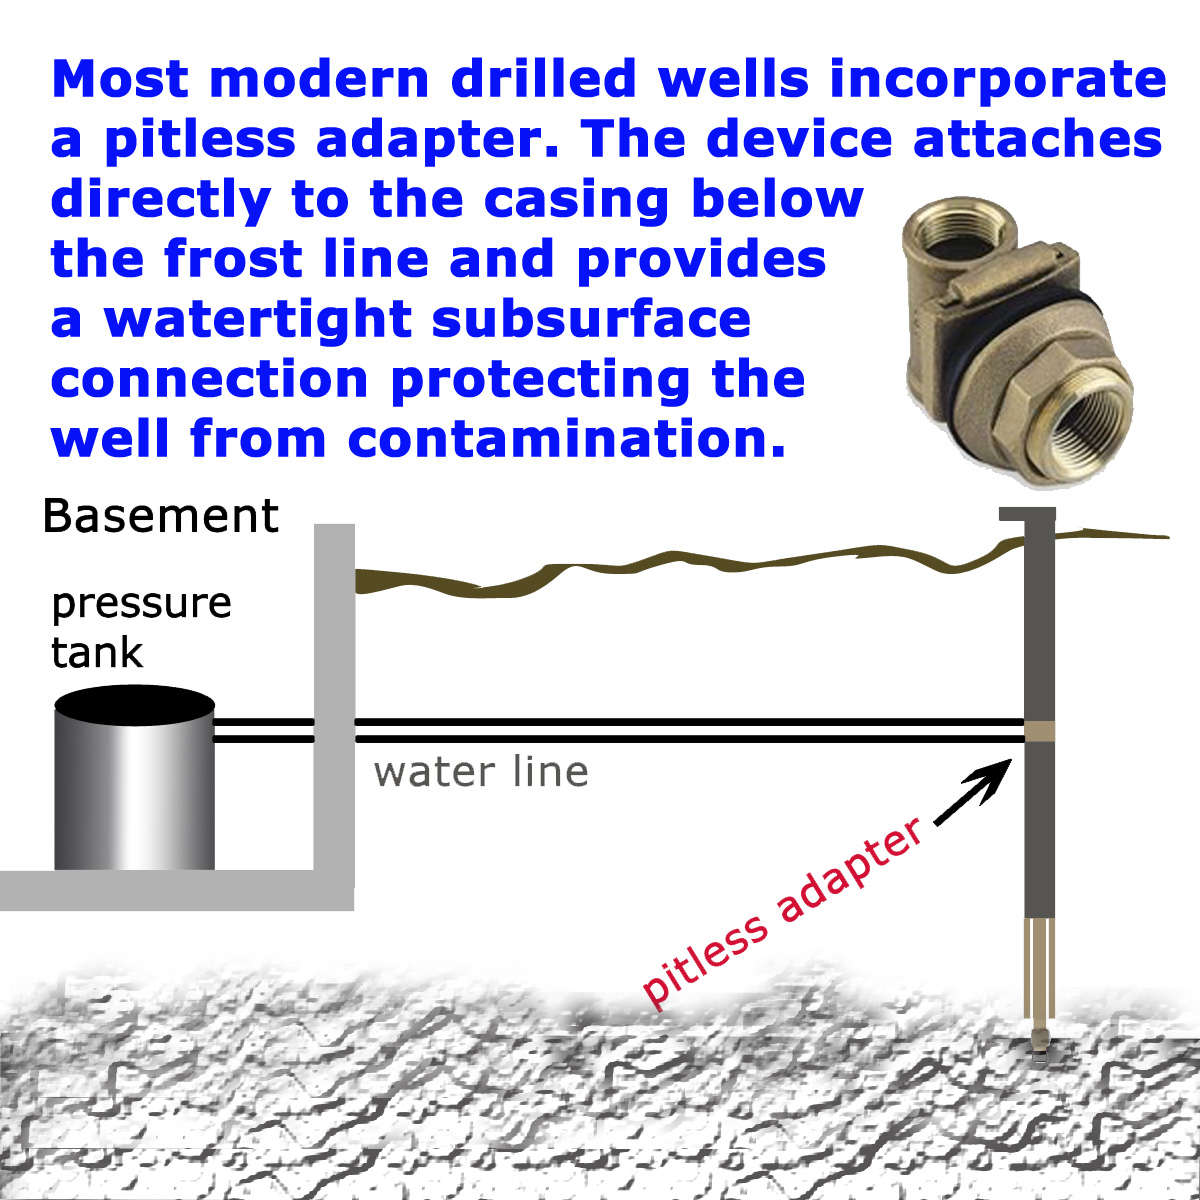 drilled well systems